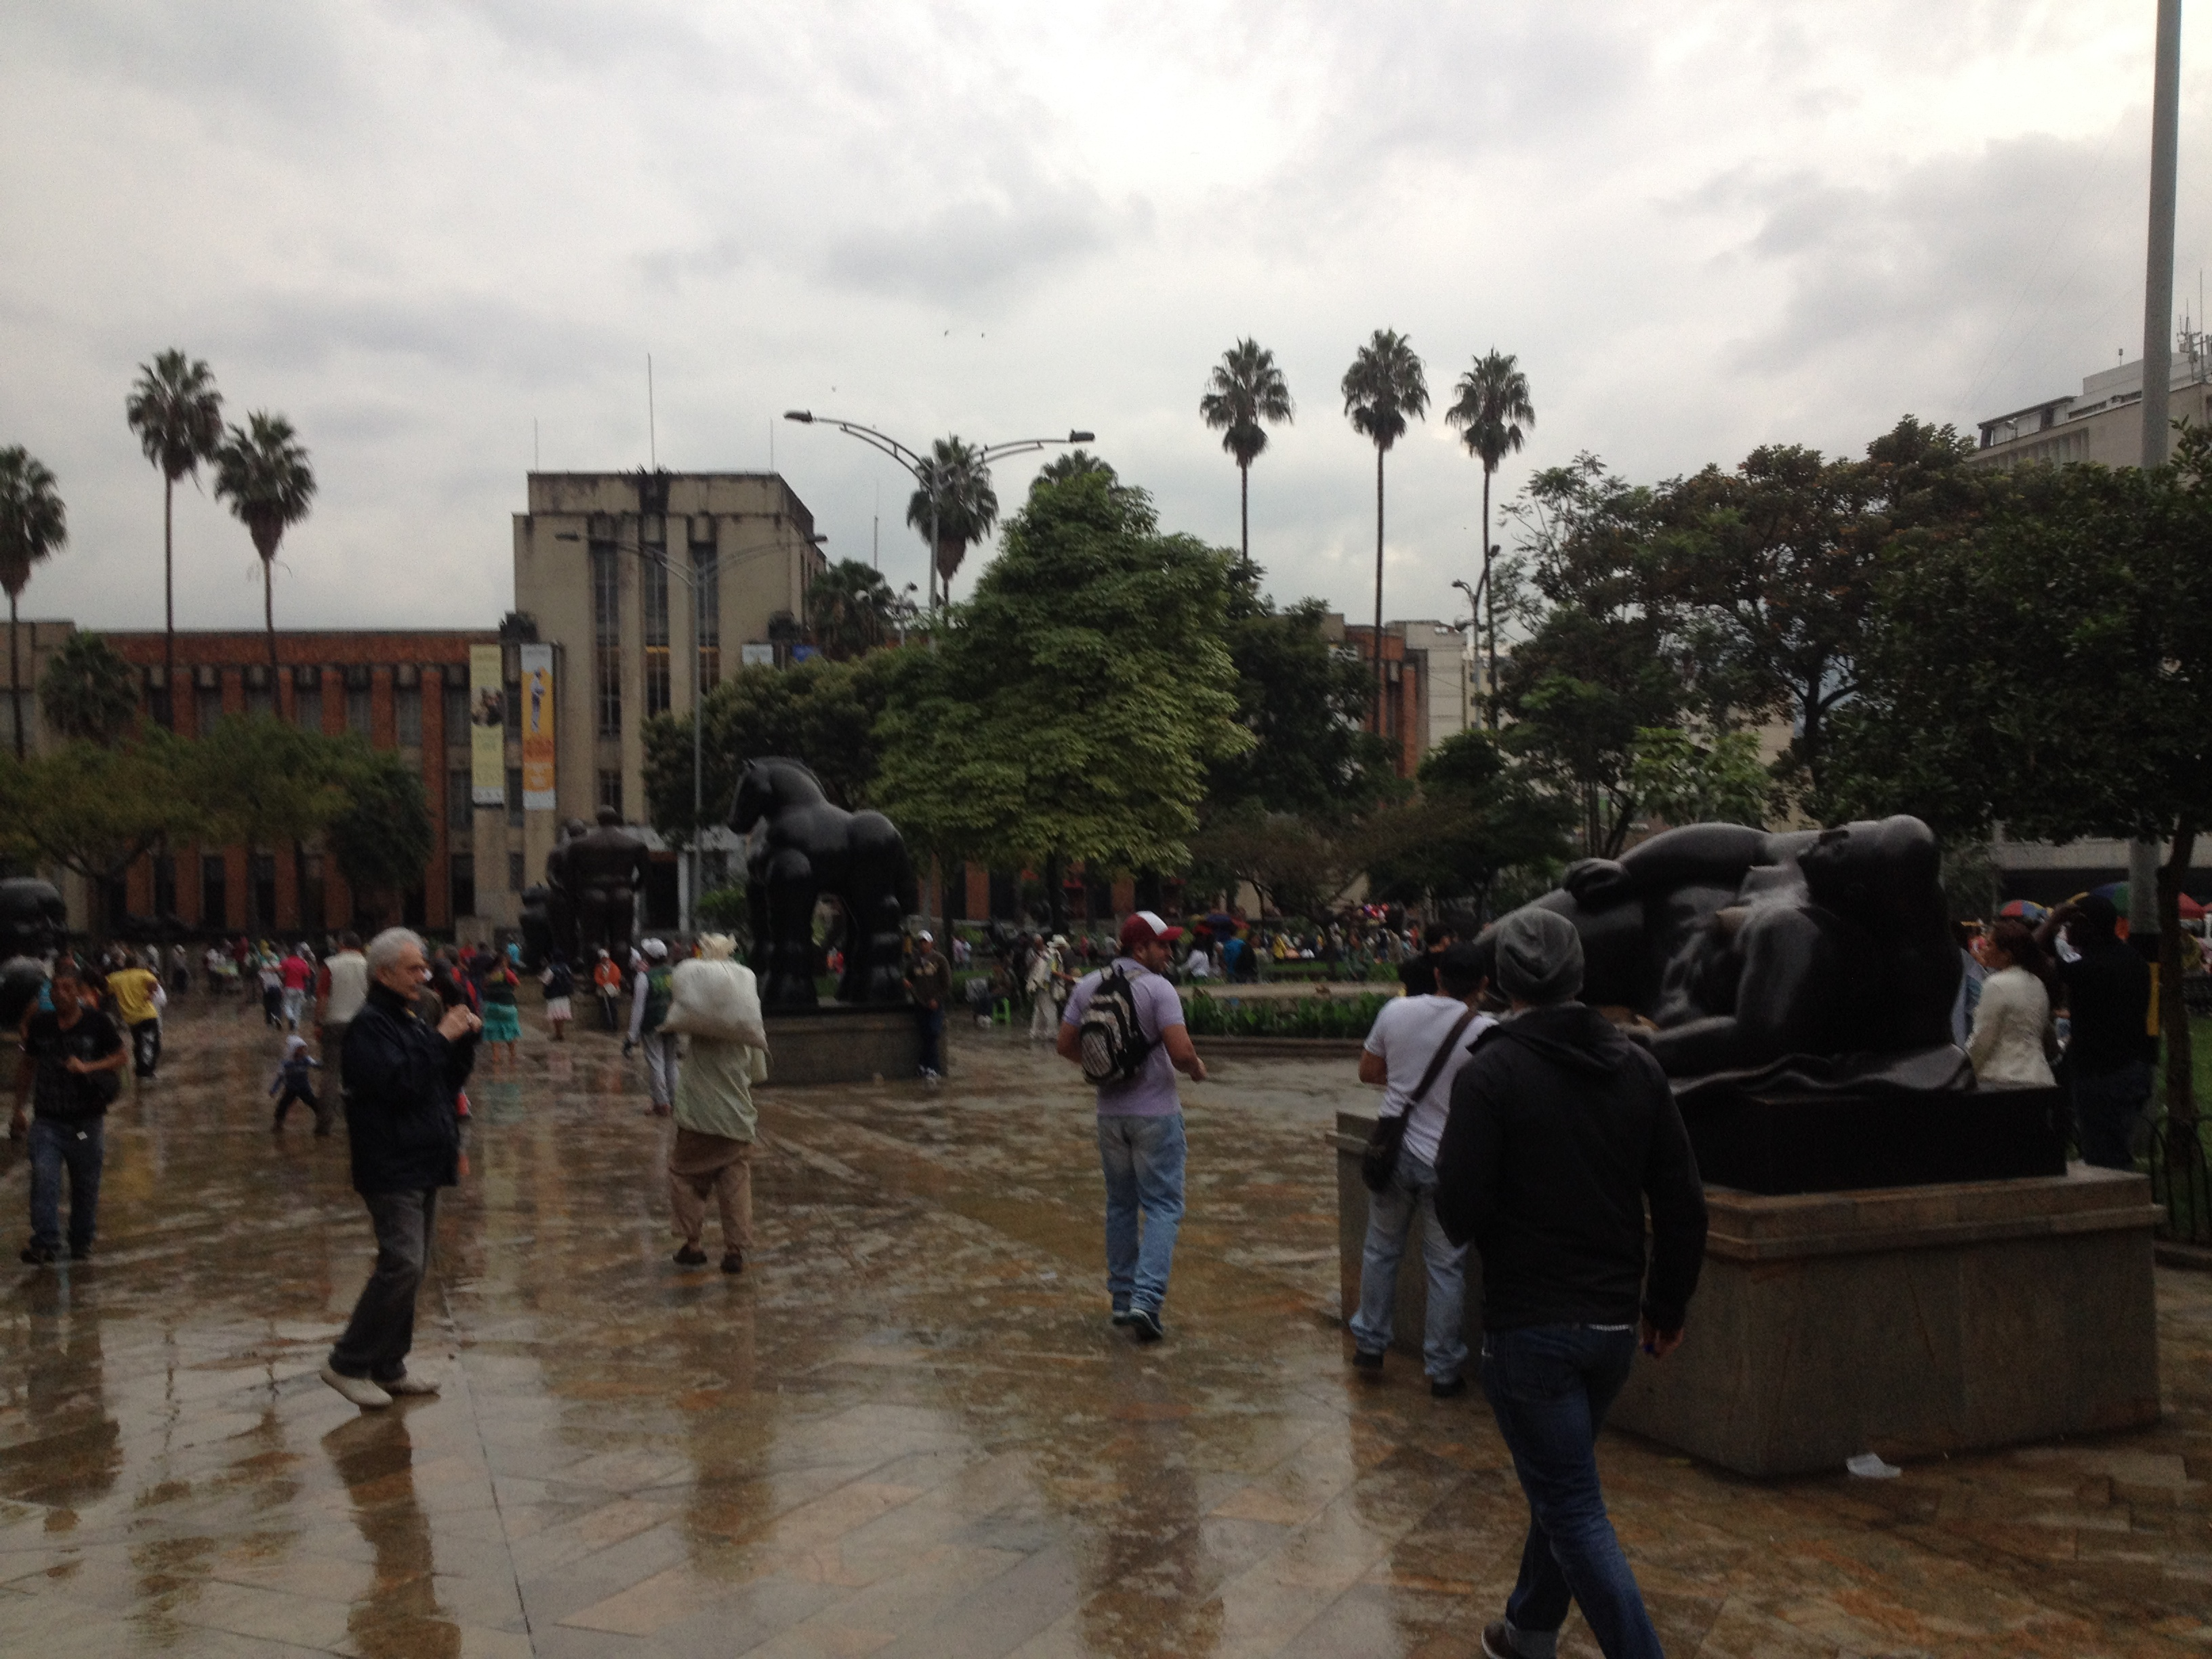 The square in El Centro has more Botero statues than you can fit in a photo.